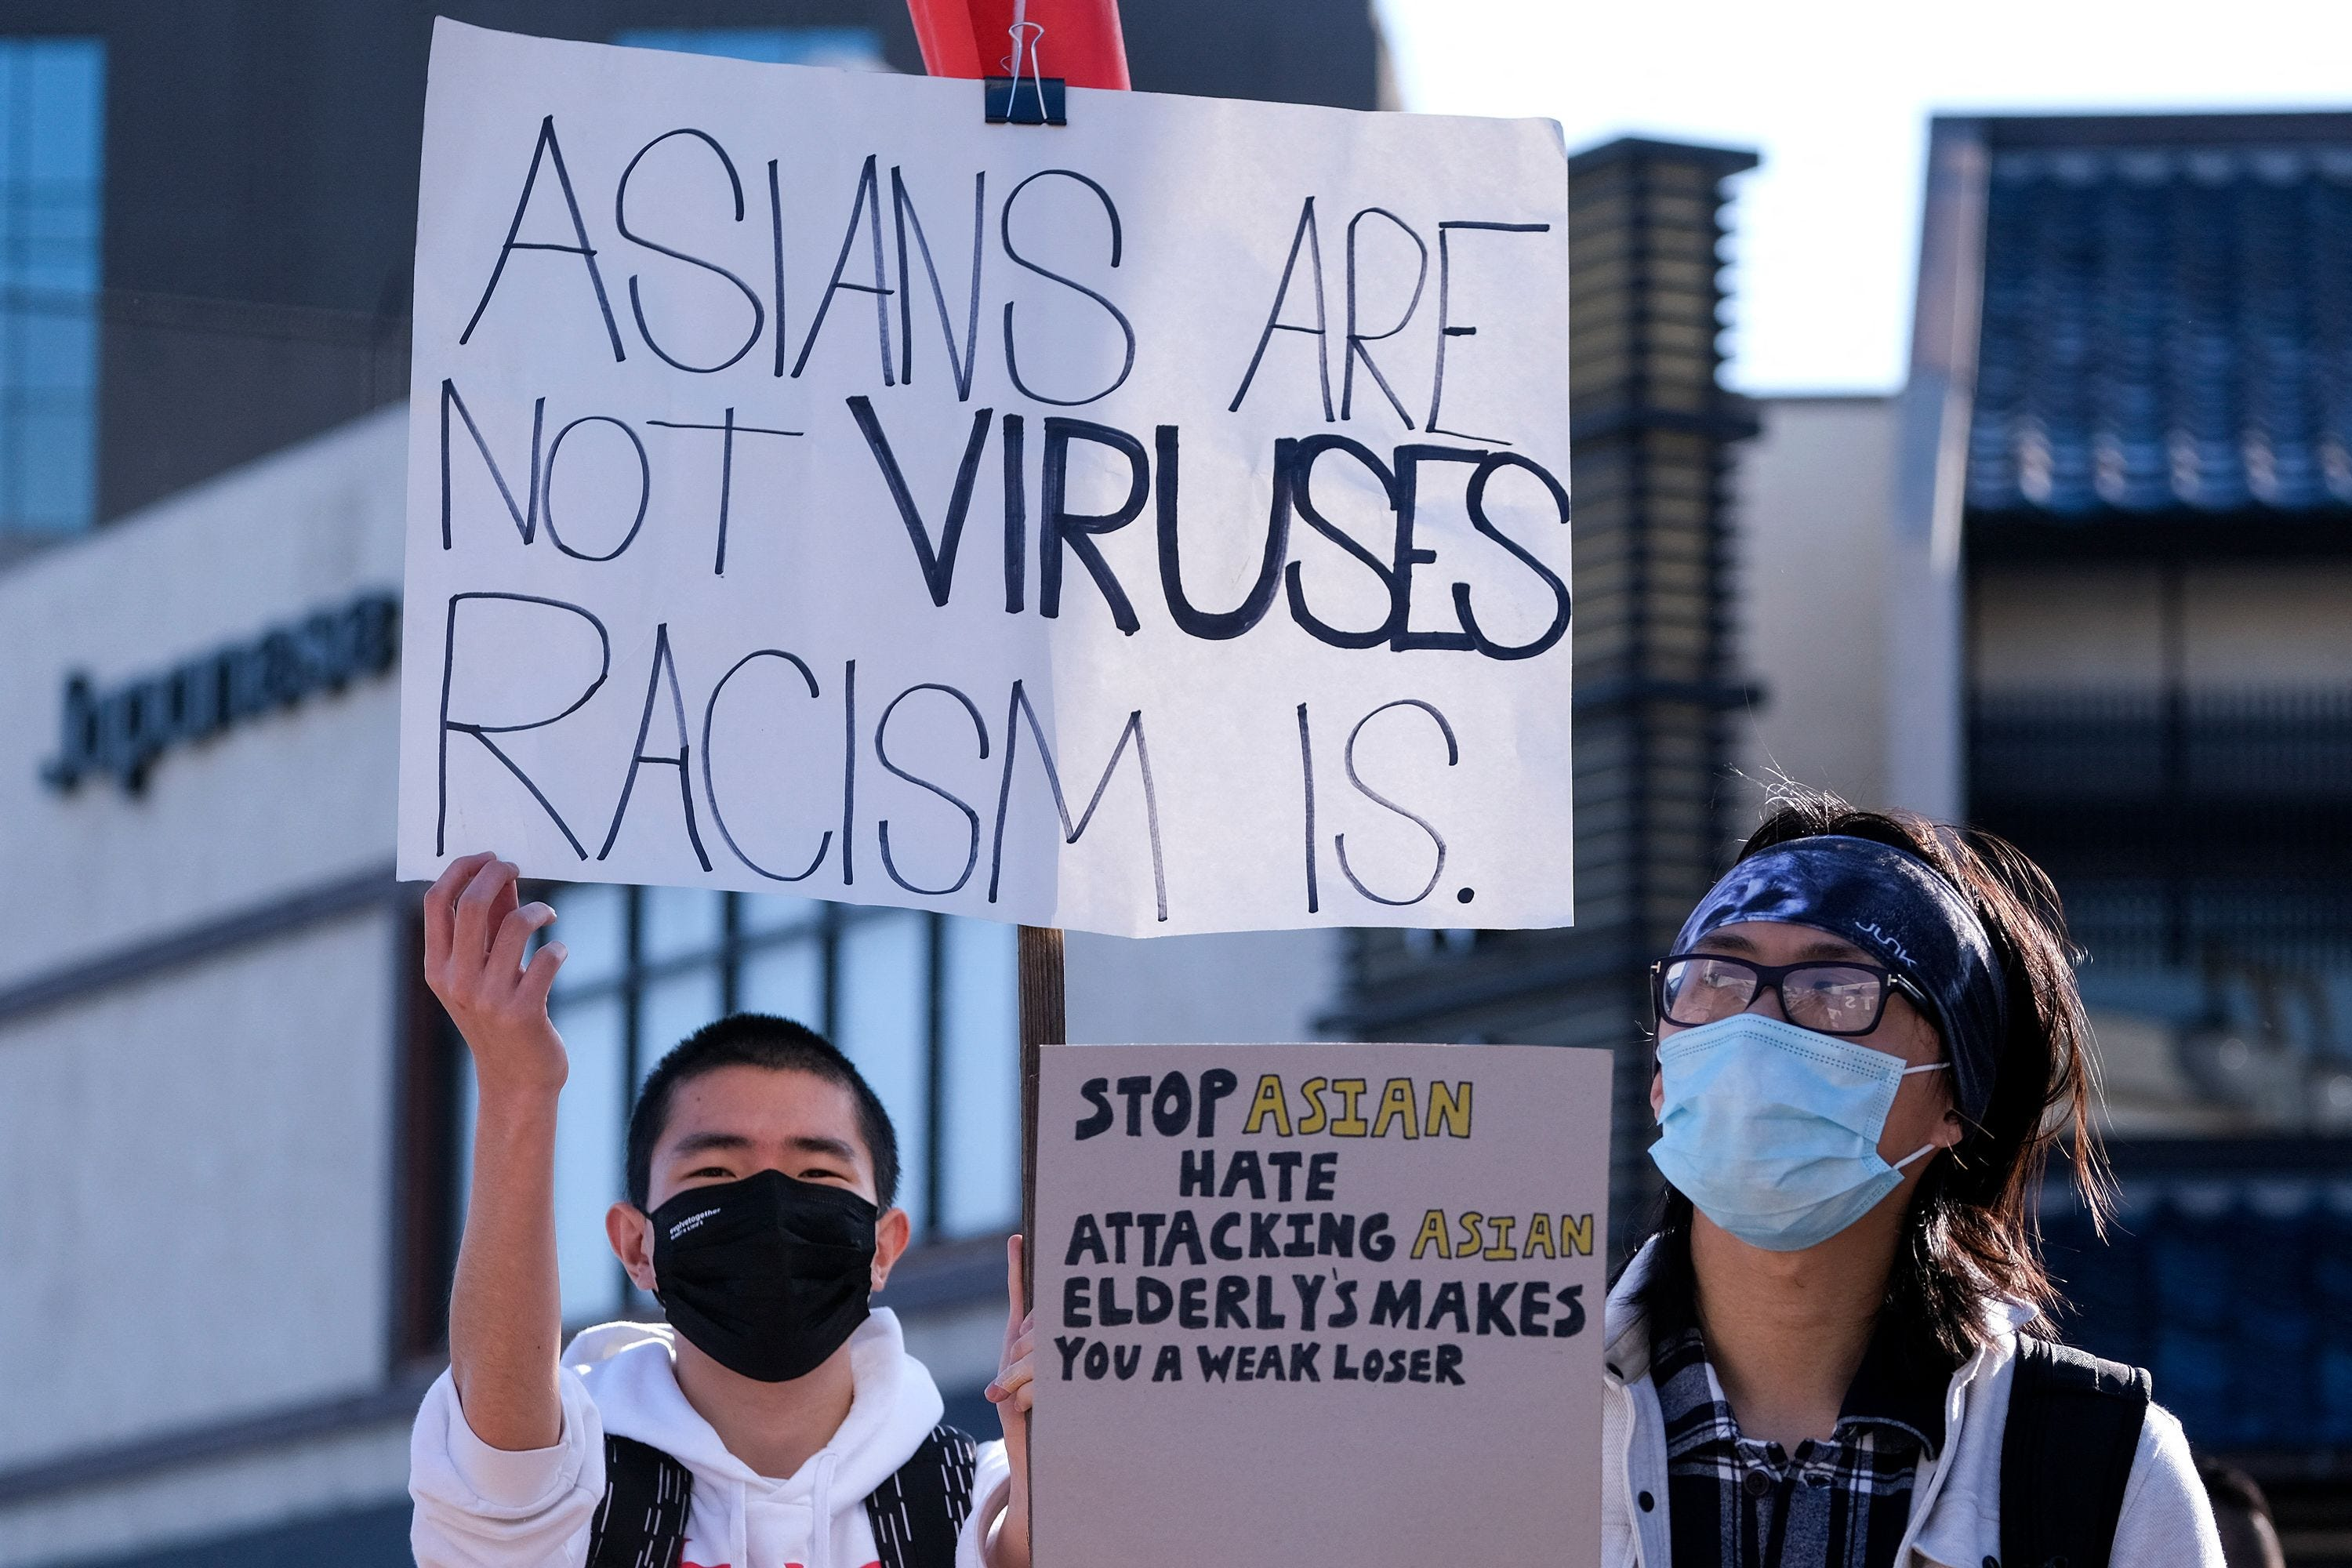 Two people hold up signs declaiming anti-Asian violence.